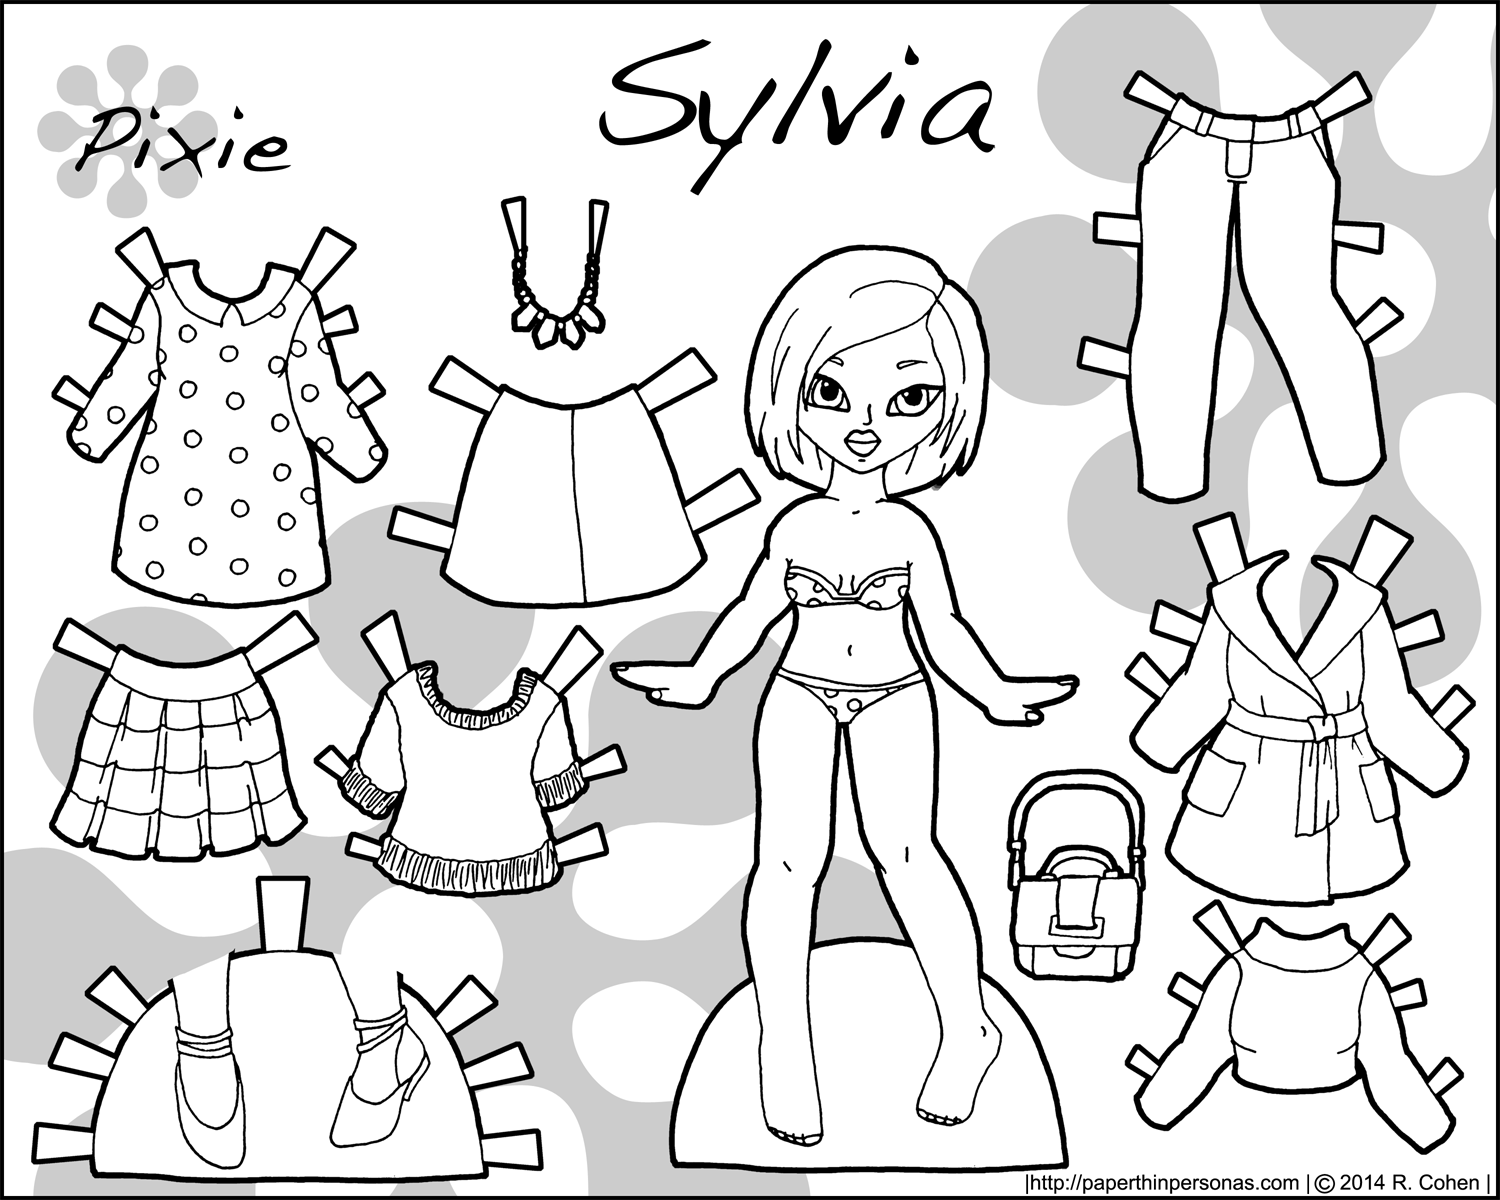 picture regarding Paper Doll Clothing Printable known as Sylvia: An Asian Printable Paper Doll with Modern